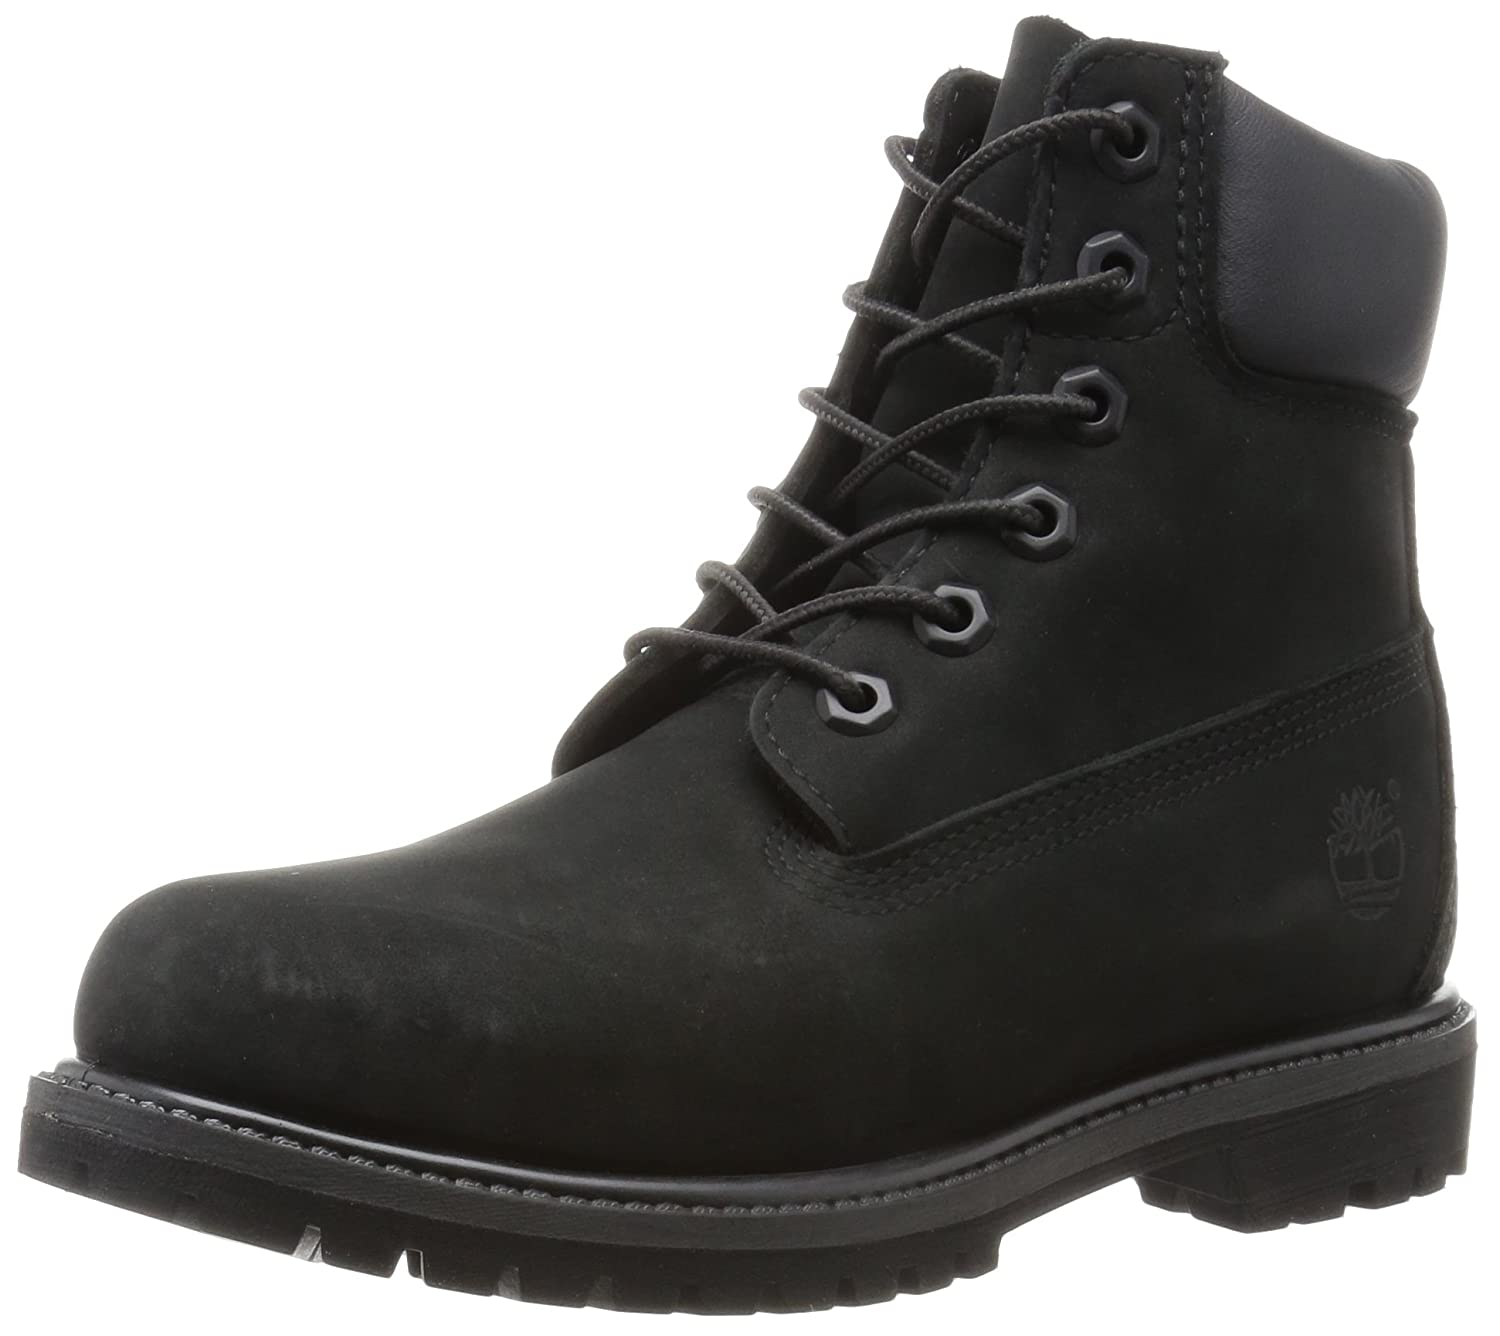 Timberland Women s 6 in Premium Waterproof (Wide Fit) Ankle Boots   Amazon.co.uk  Shoes   Bags 164e028e86